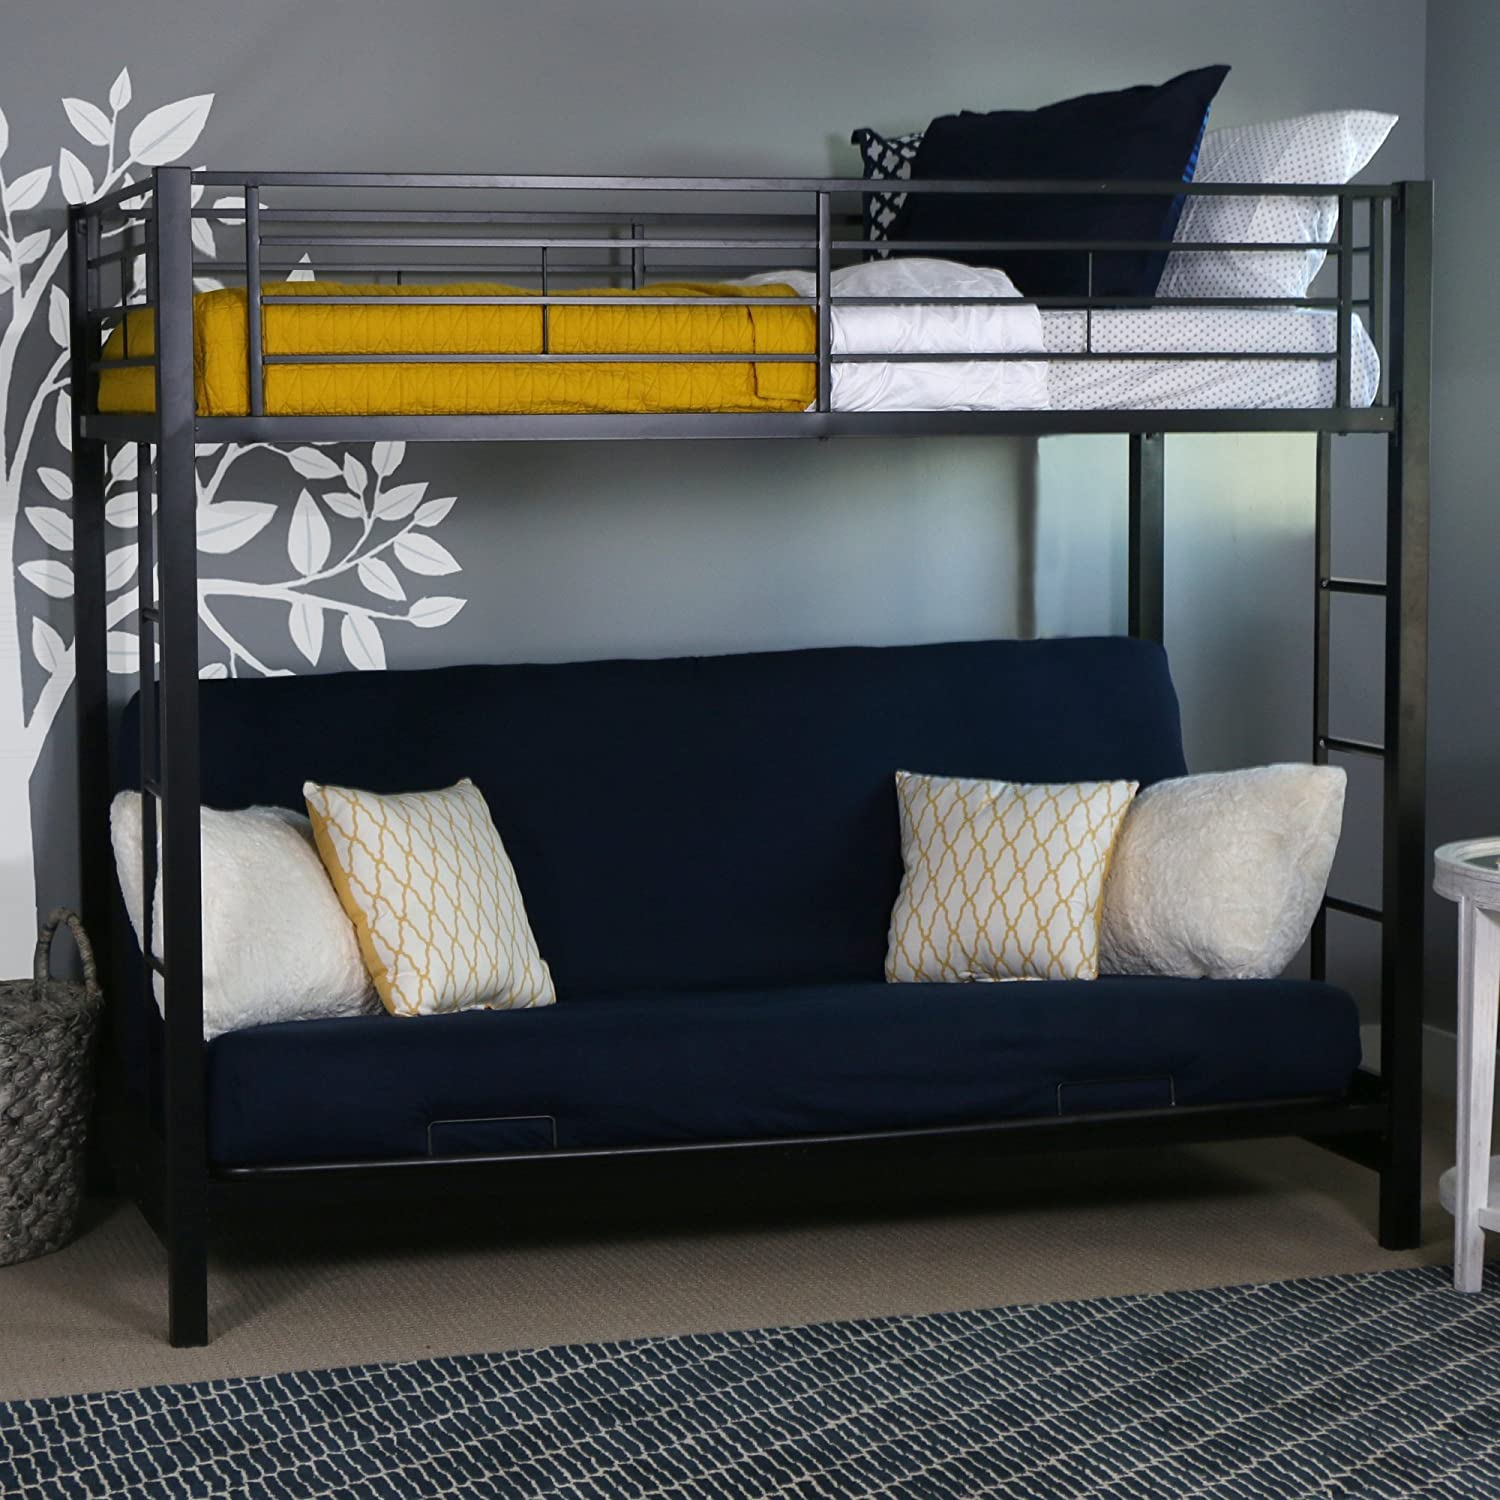 Amazon.com: Walker Edison Twin-Over-Futon Metal Bunk Bed, Black ...